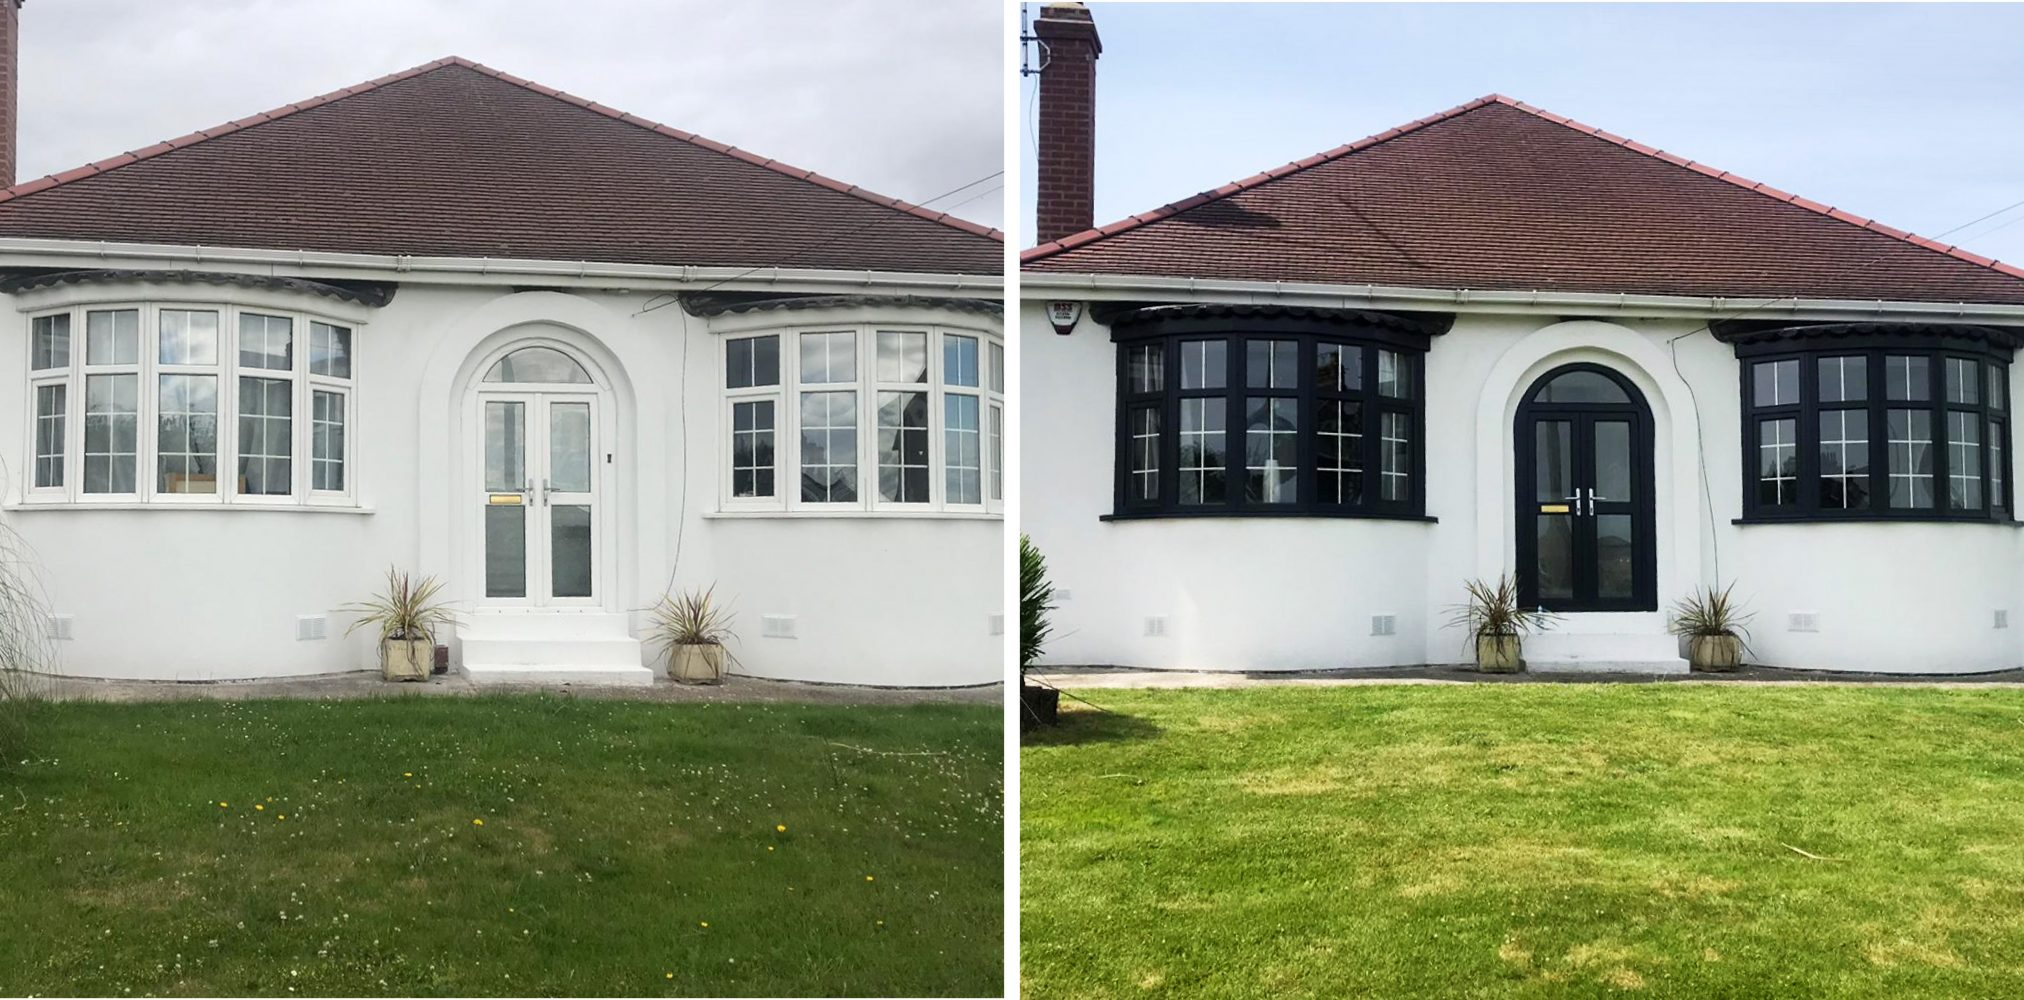 Before and after of a house that had its exterior repainted and its windows and door spayed in grey upvc paint